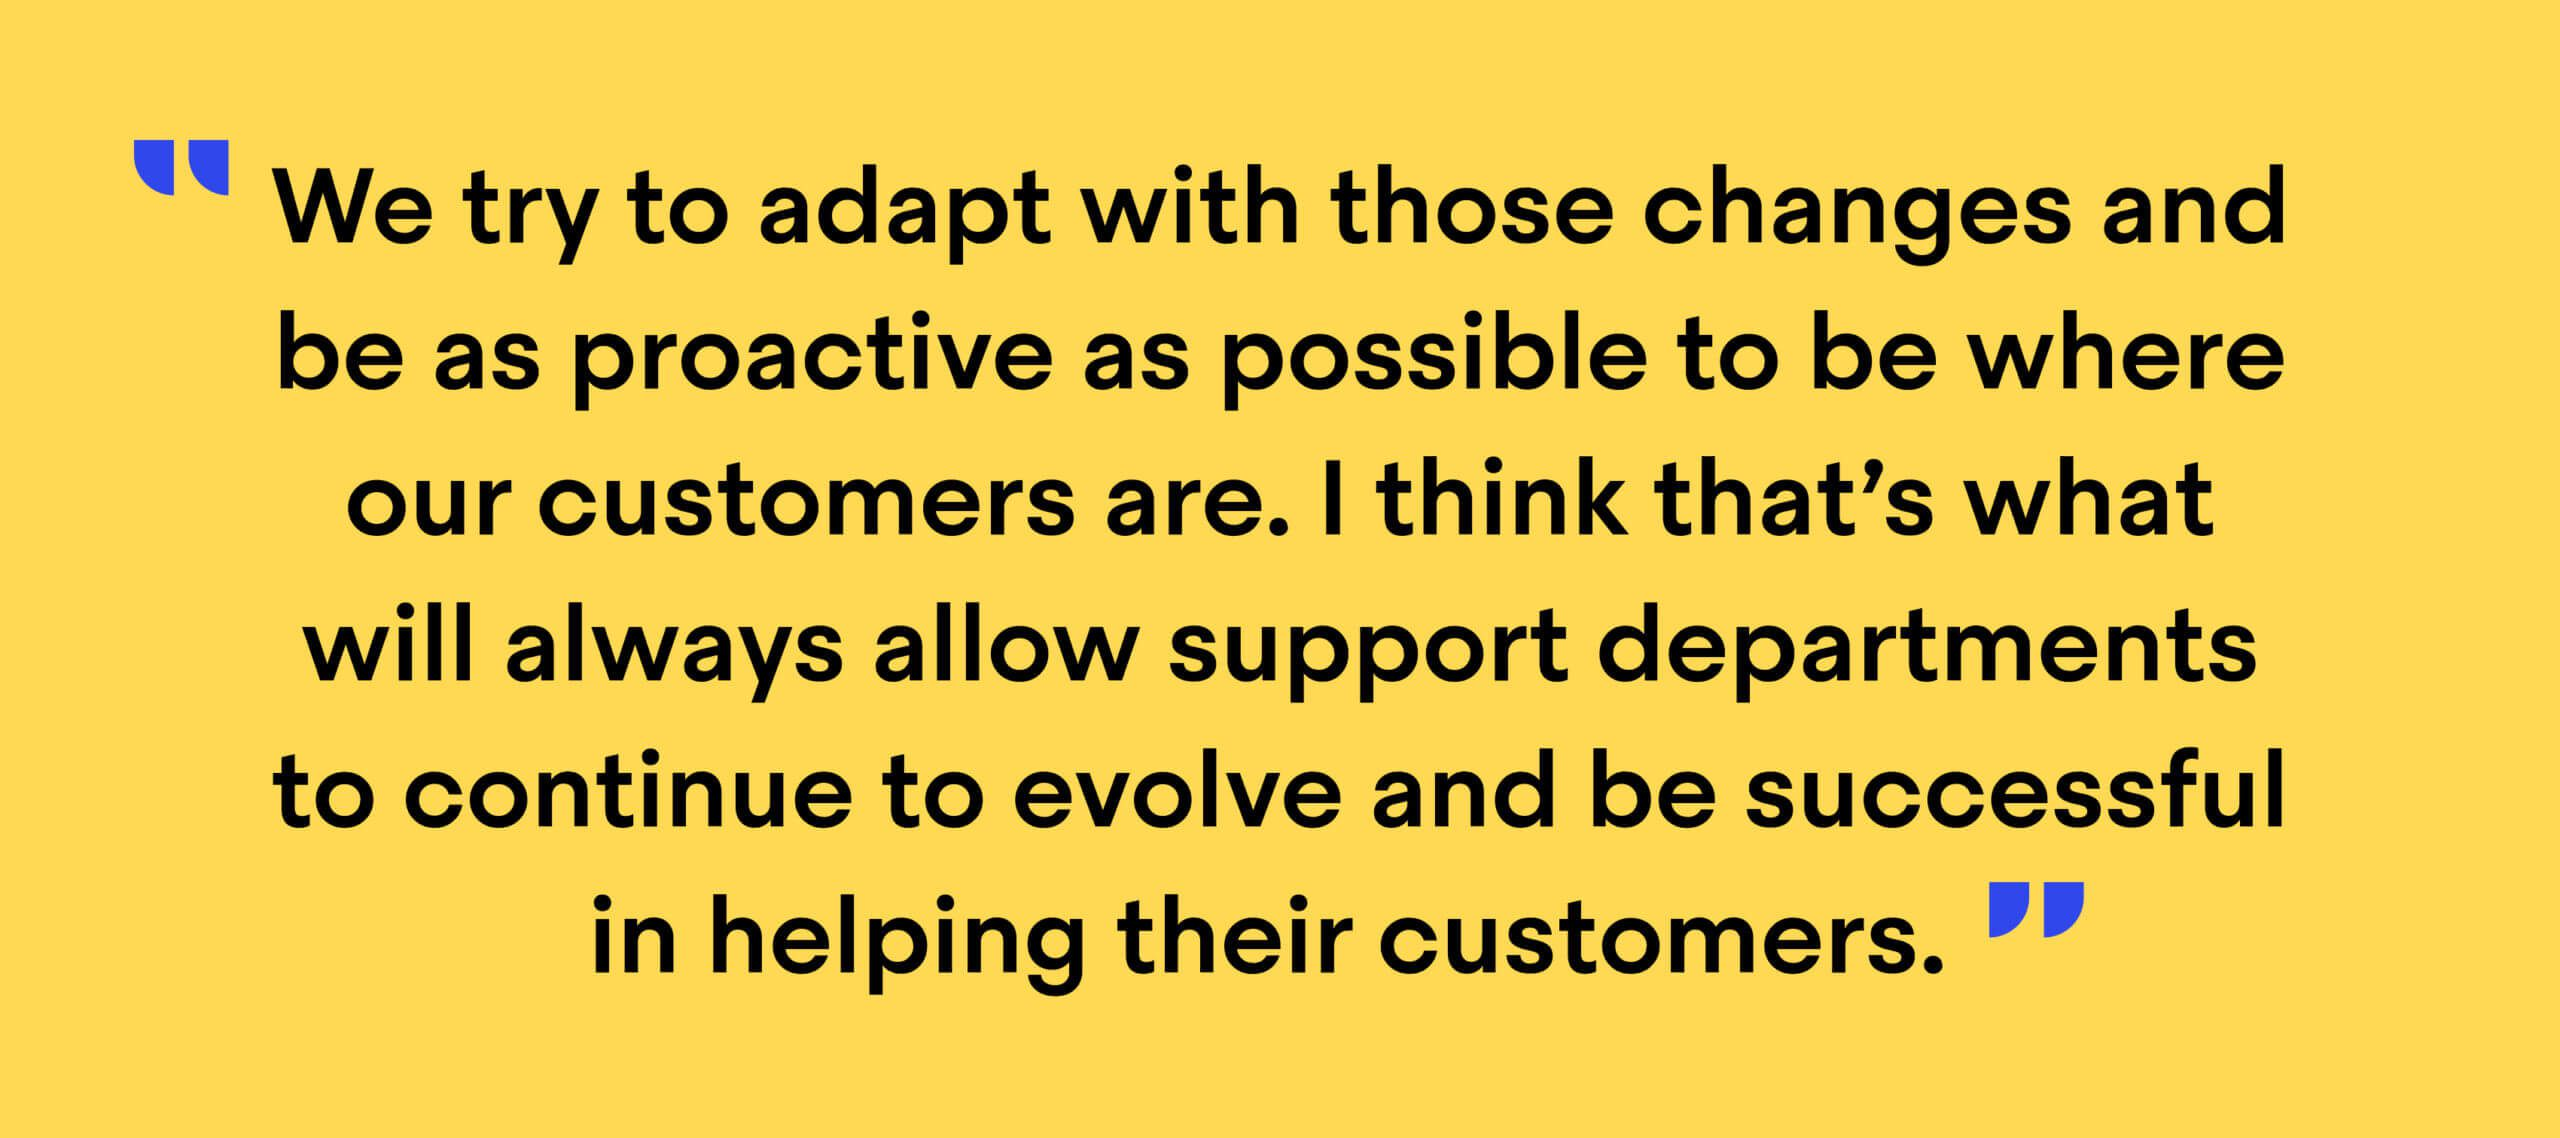 """Quote from Jean-Bernard Baptiste: """"We try to adapt with any changes and be as proactive as possible to be where our customers are. I think that's what will always allow support departments to continue to evolve and be successful in helping their customers."""""""